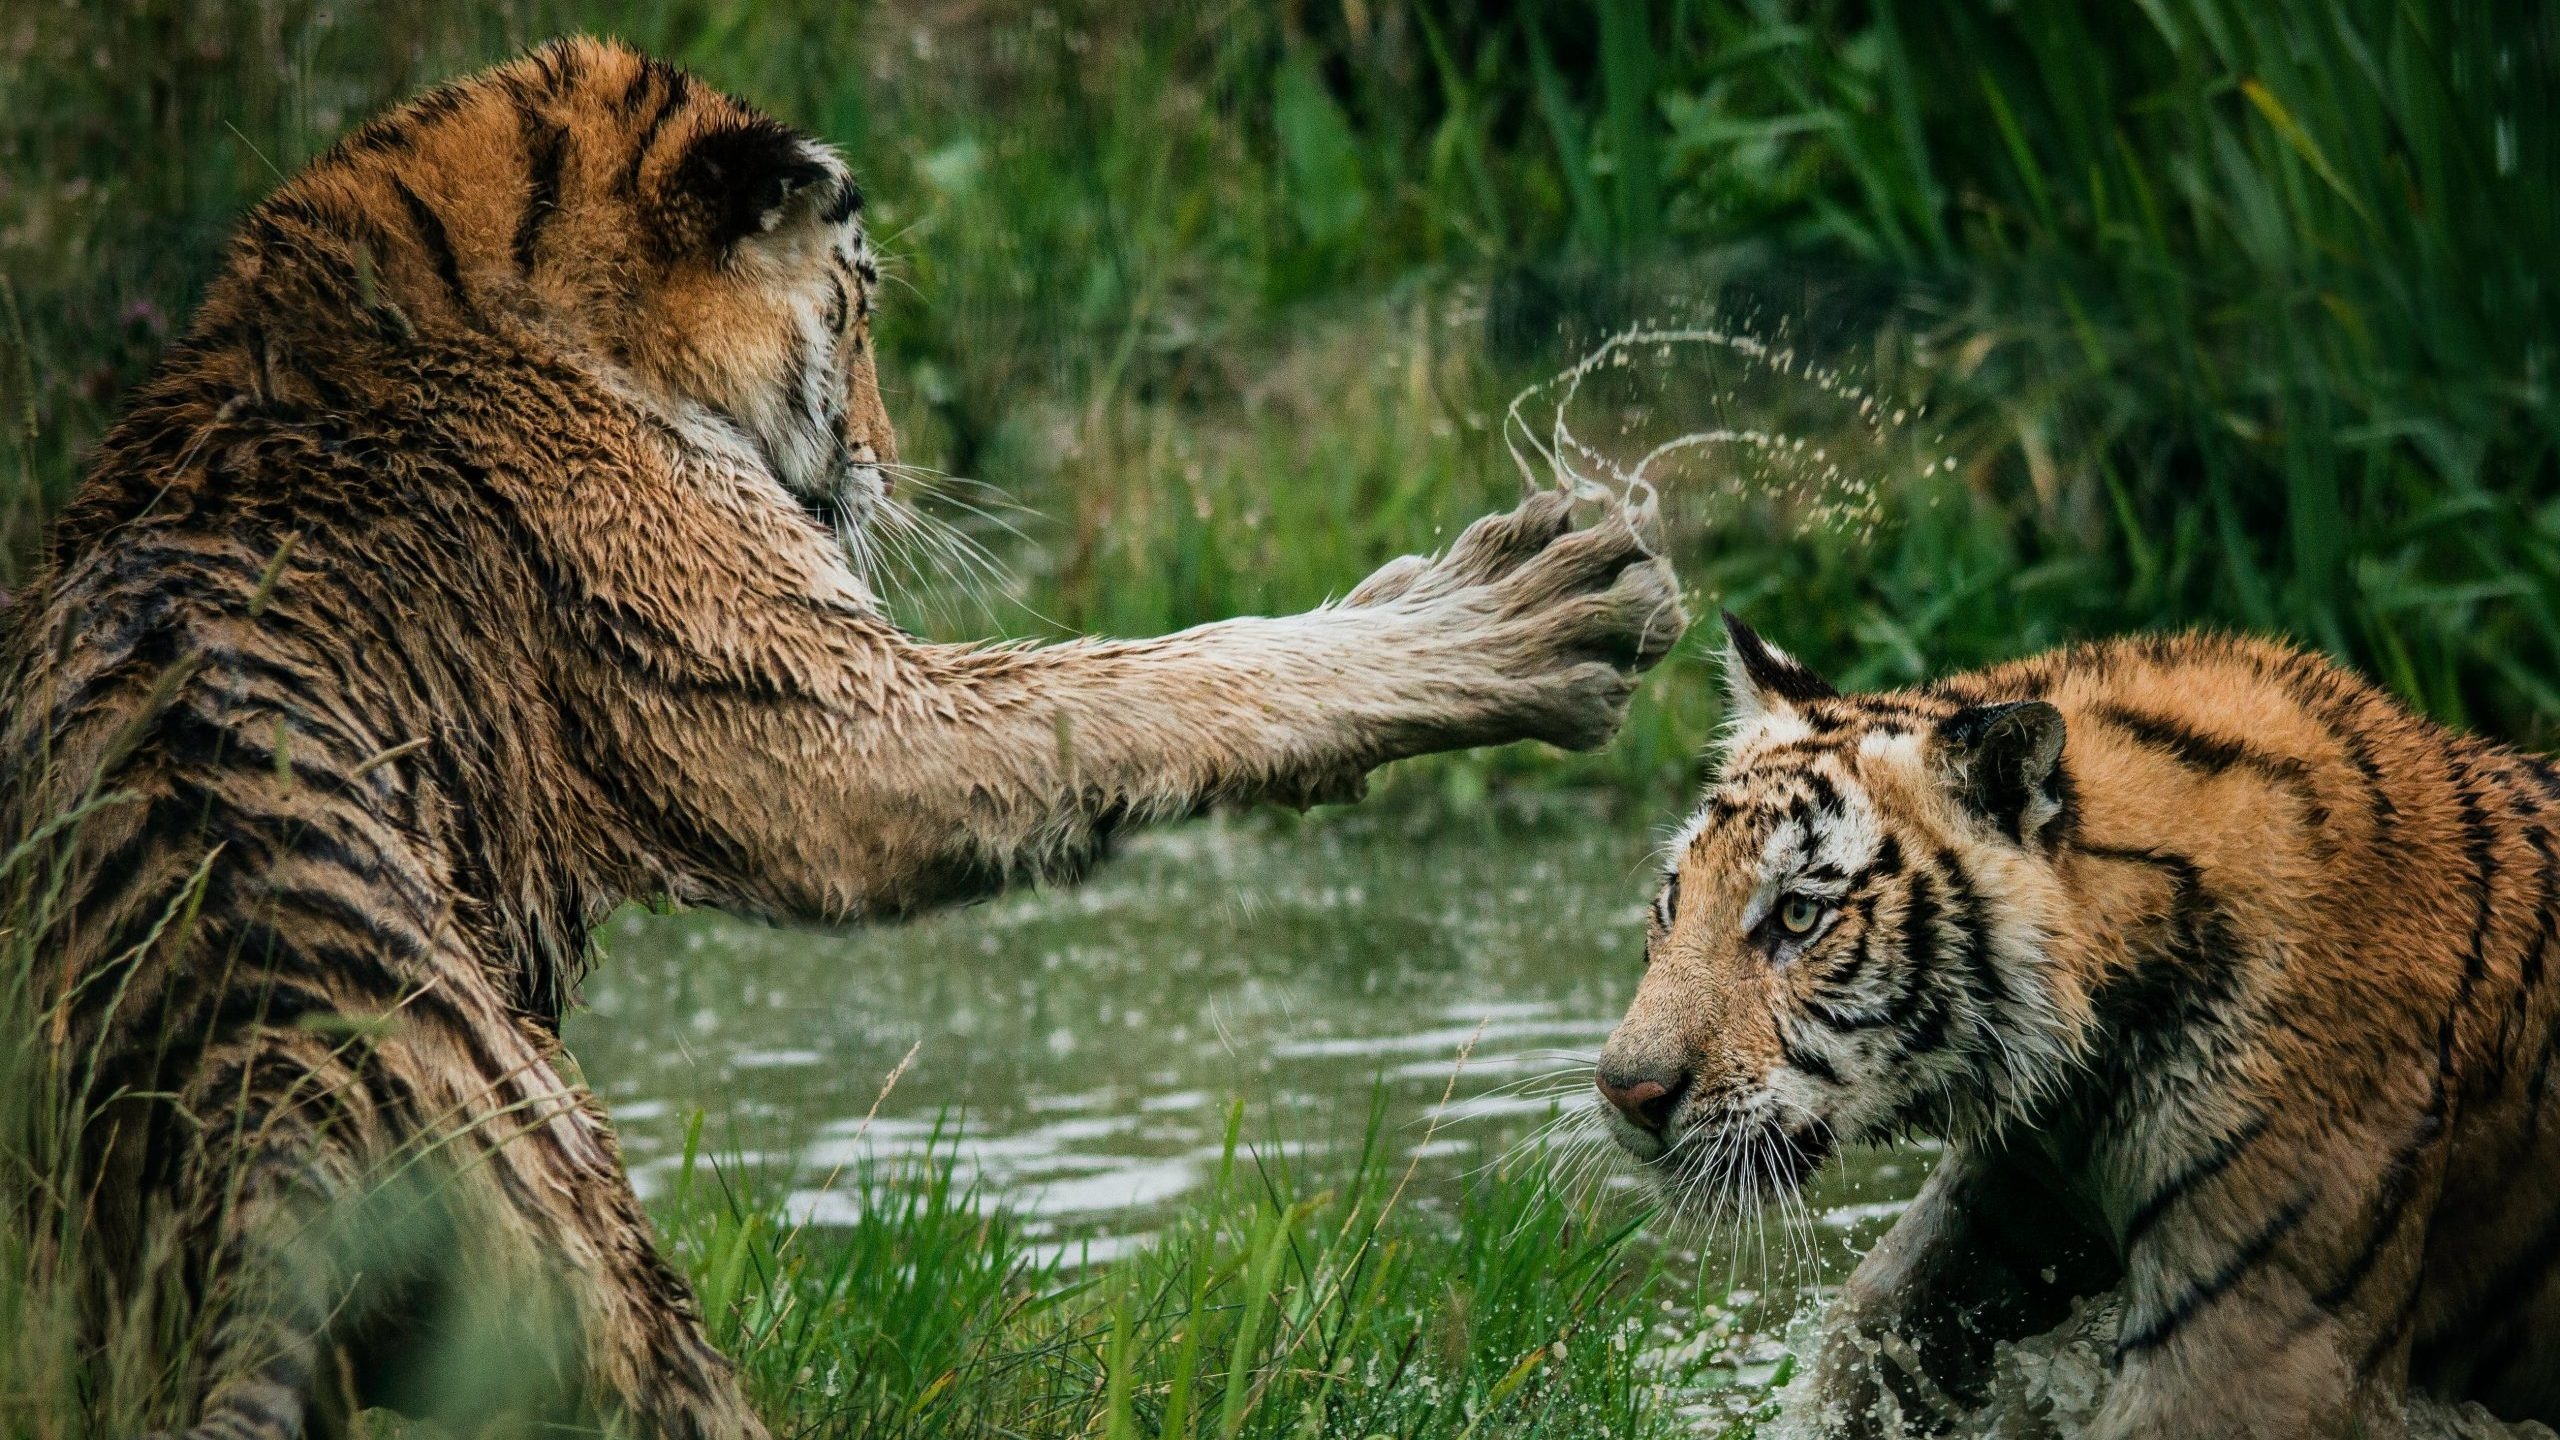 Tigers Use Growl In Very Low Frequencies To Paralyze Victims